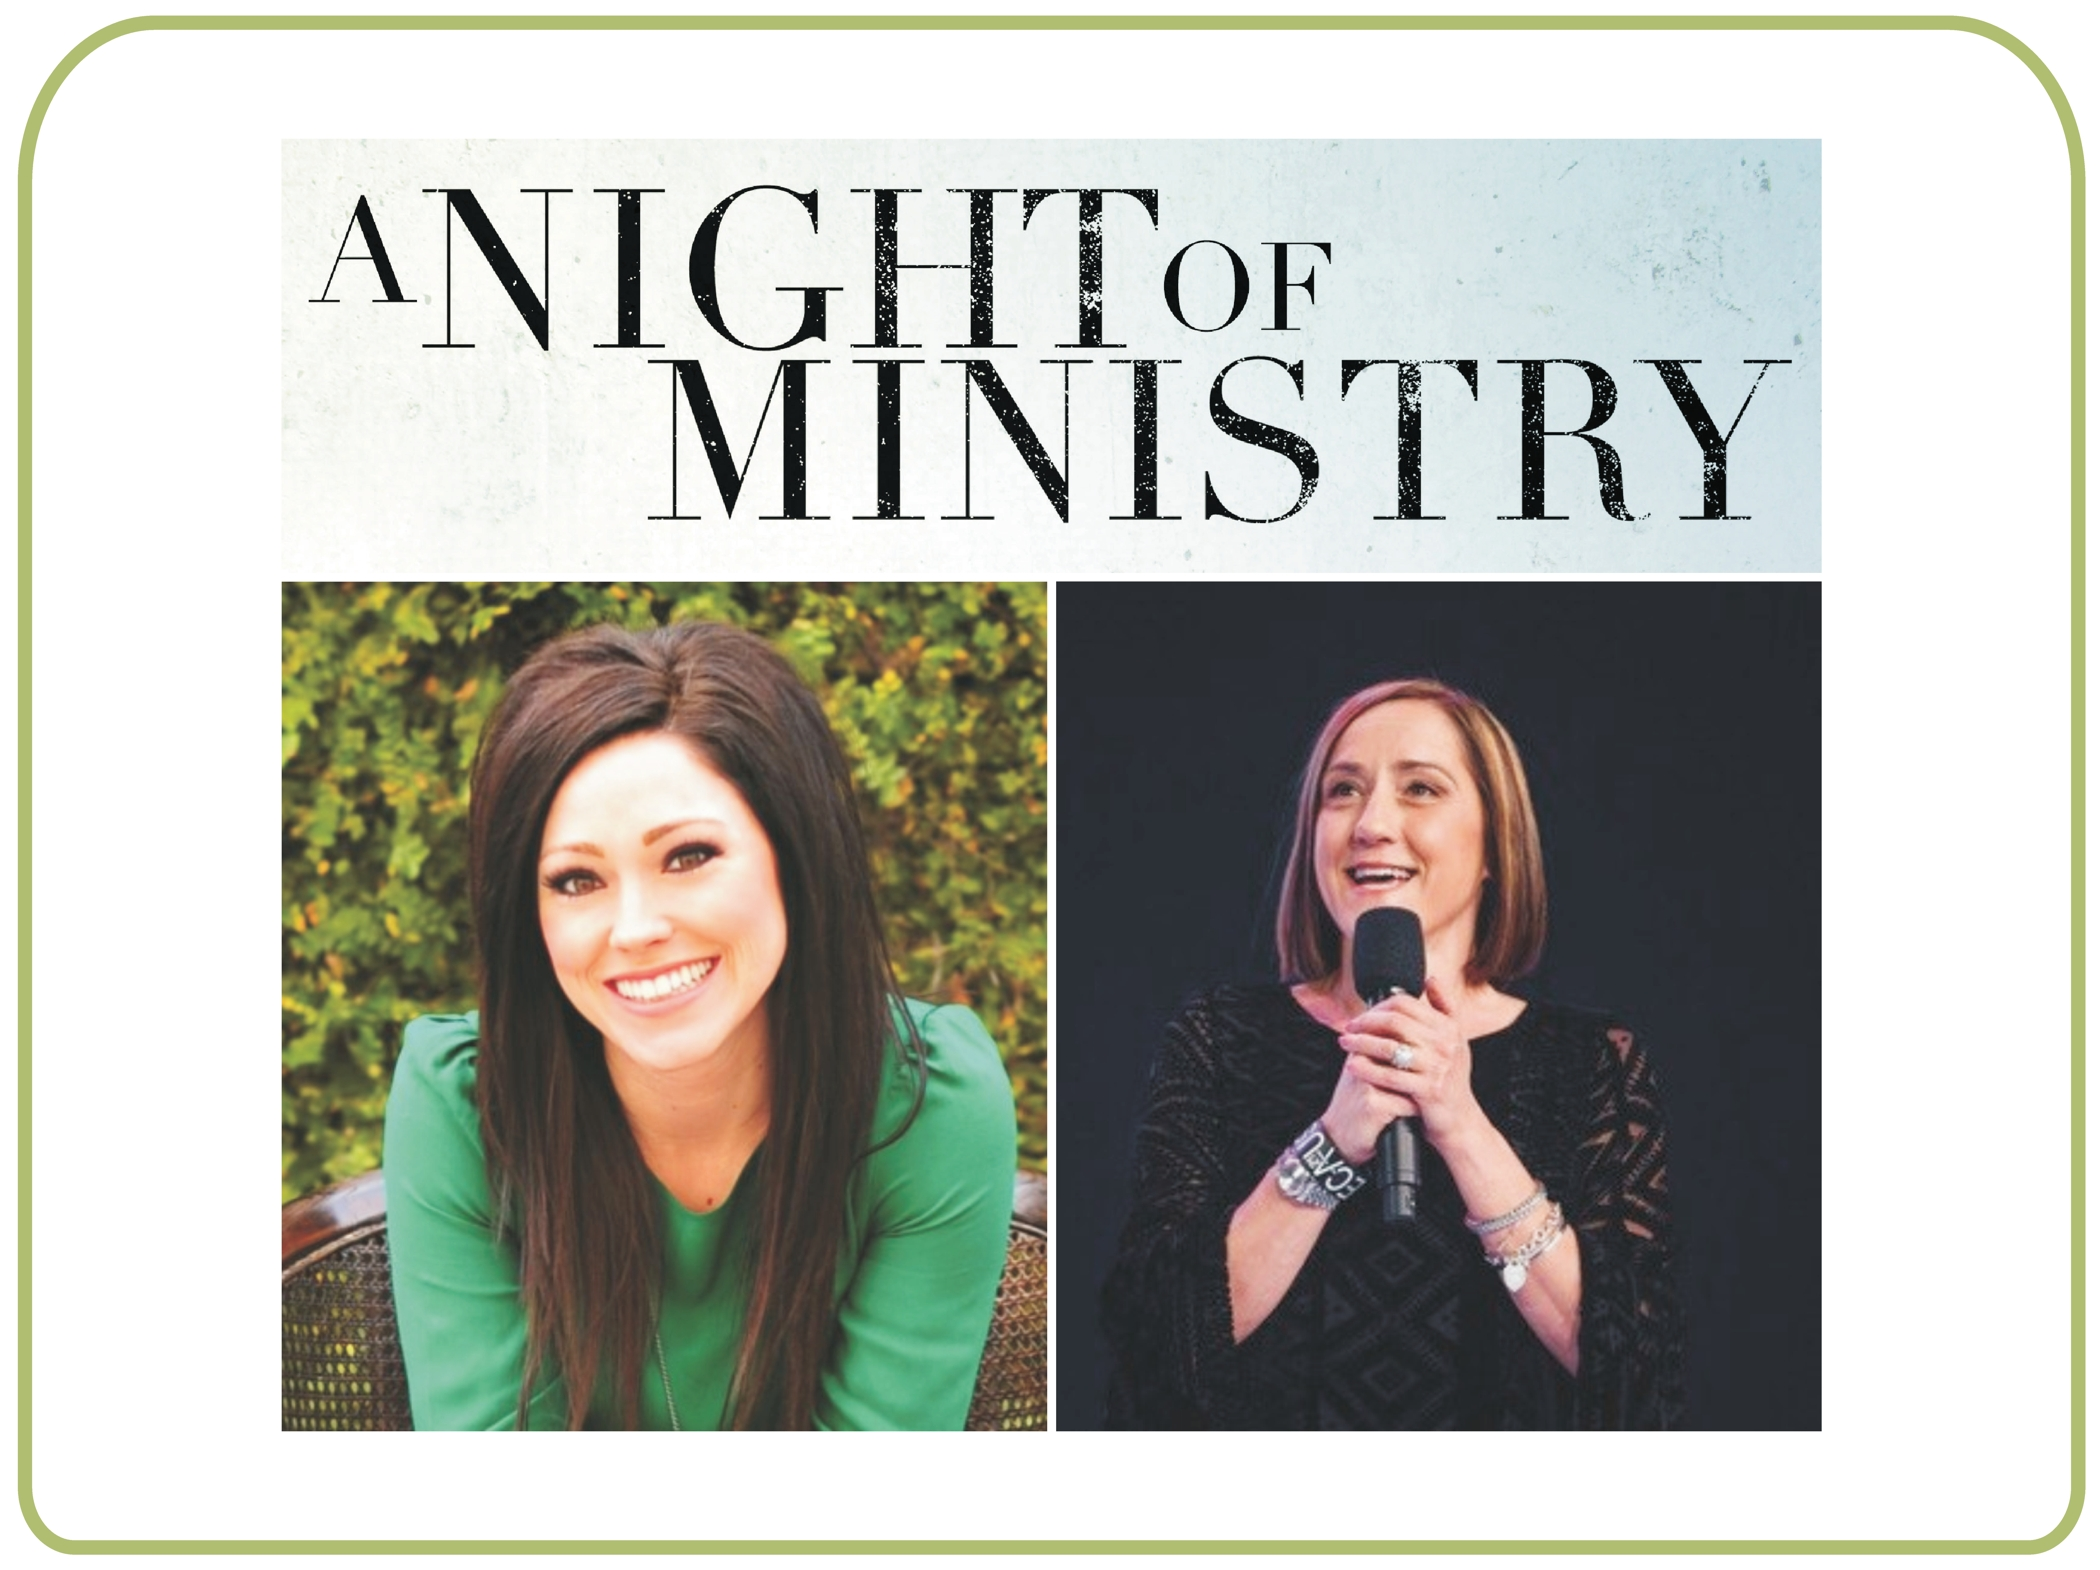 A 20night 20of 20ministry 20w 20kari 20jobe 20  20christine 20caine